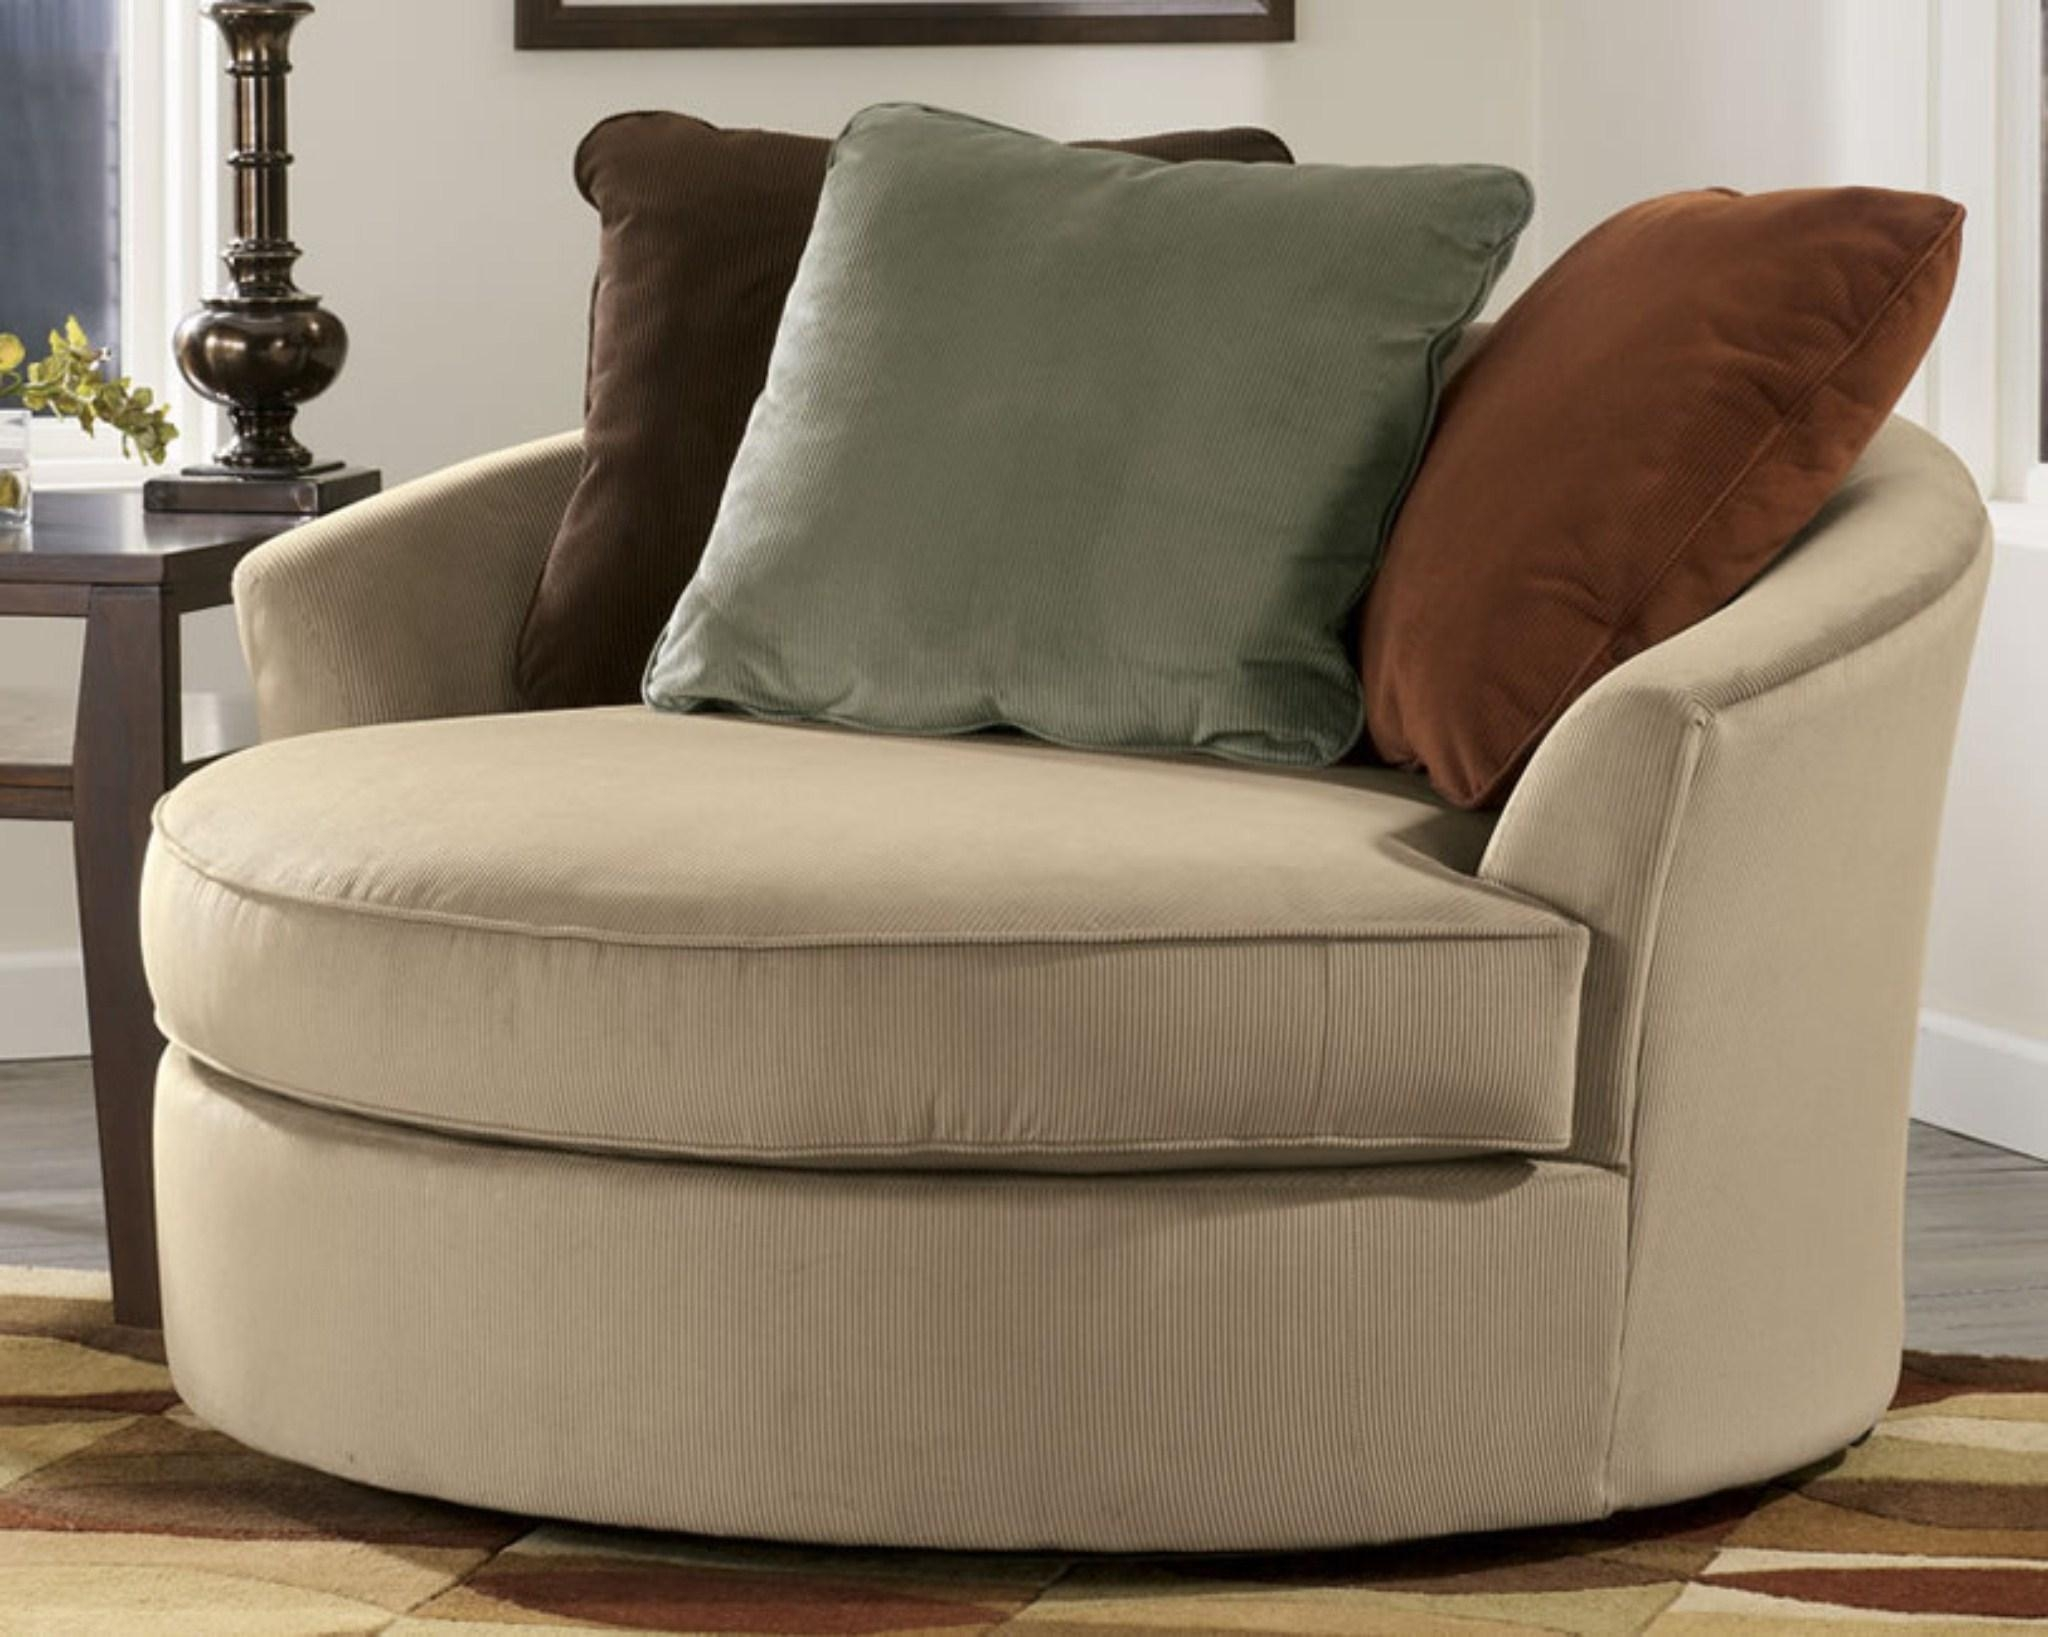 Round Swivel Sofa Chair – Leather Sectional Sofa Inside Spinning Sofa Chairs (View 13 of 20)